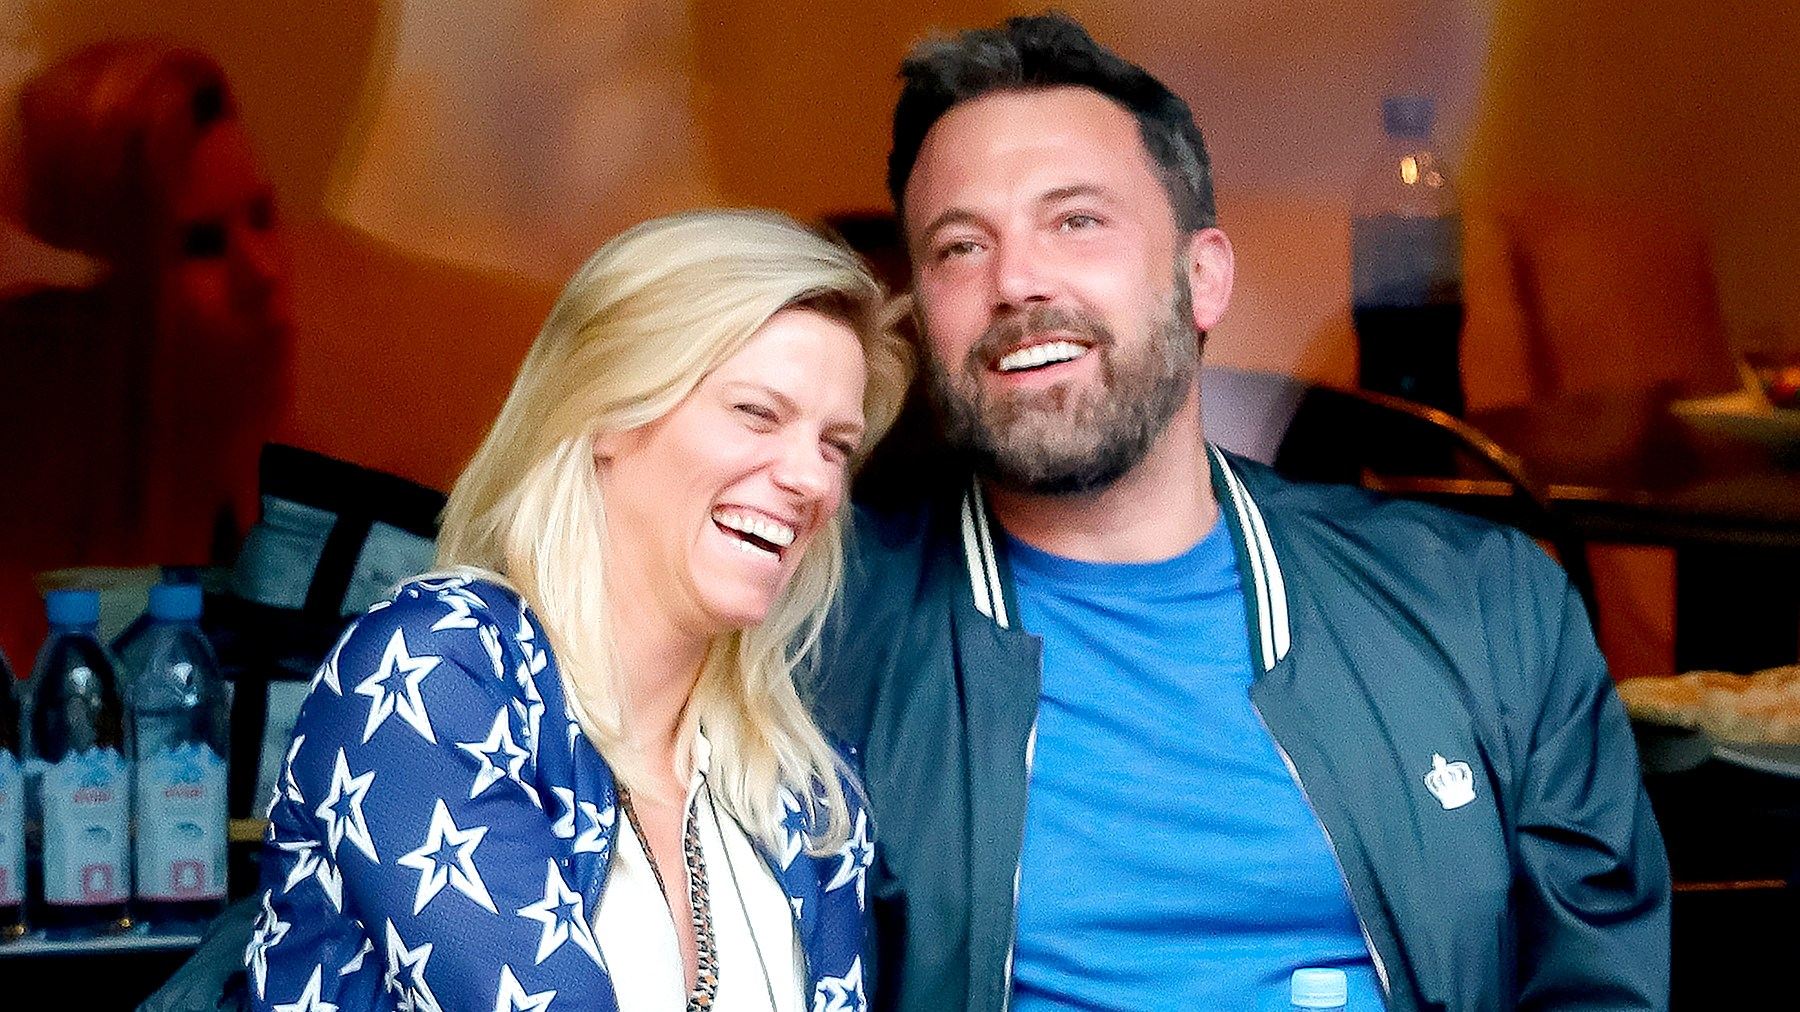 Ben Affleck and Lindsay Shookus attend the 2017 US Open Tennis Championships at Arthur Ashe Stadium on September 10, 2017 in New York City.